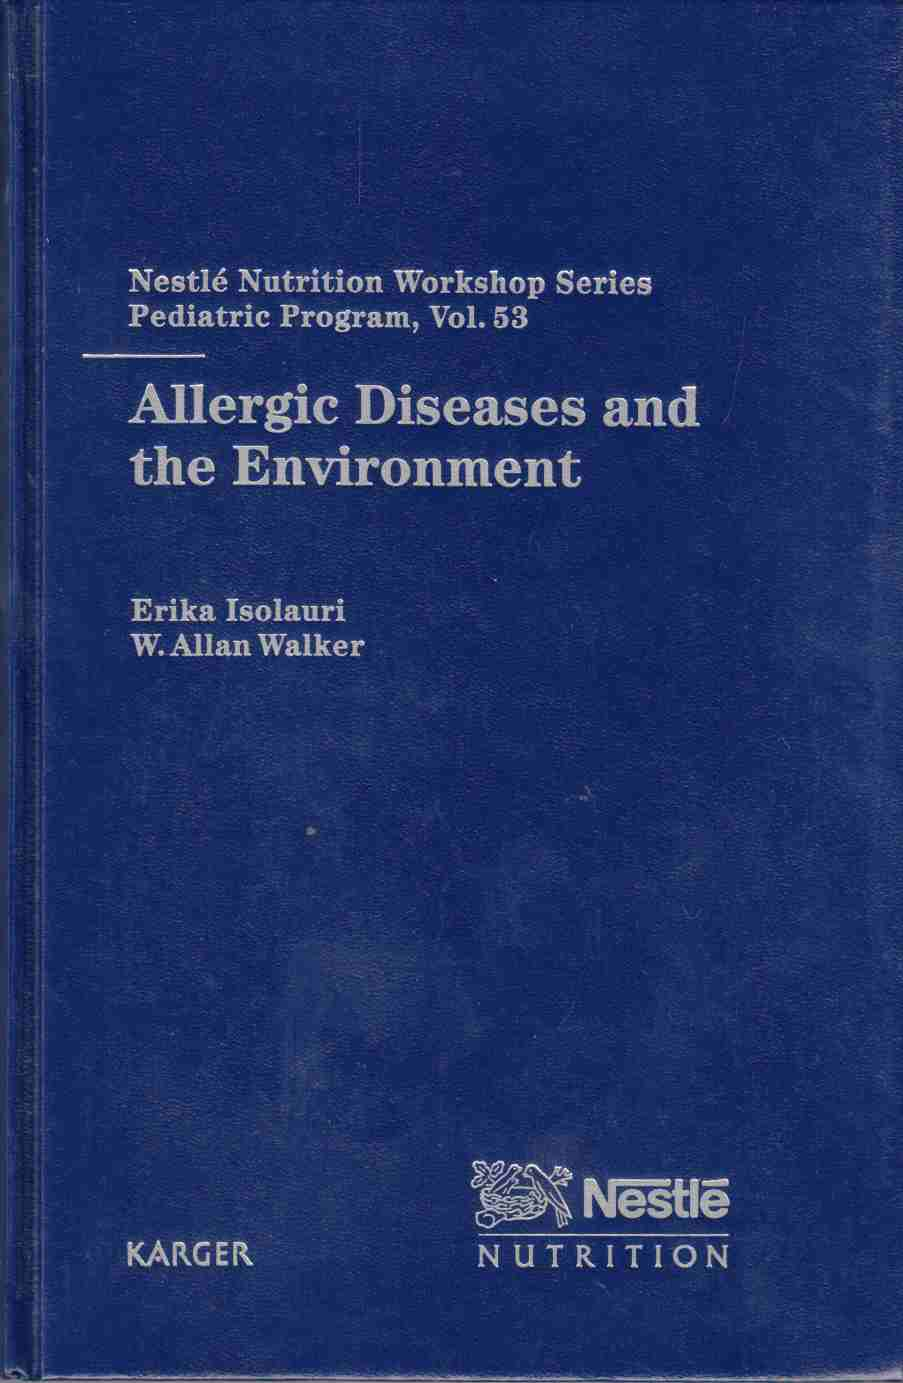 Image for Allergic Diseases and the Environment